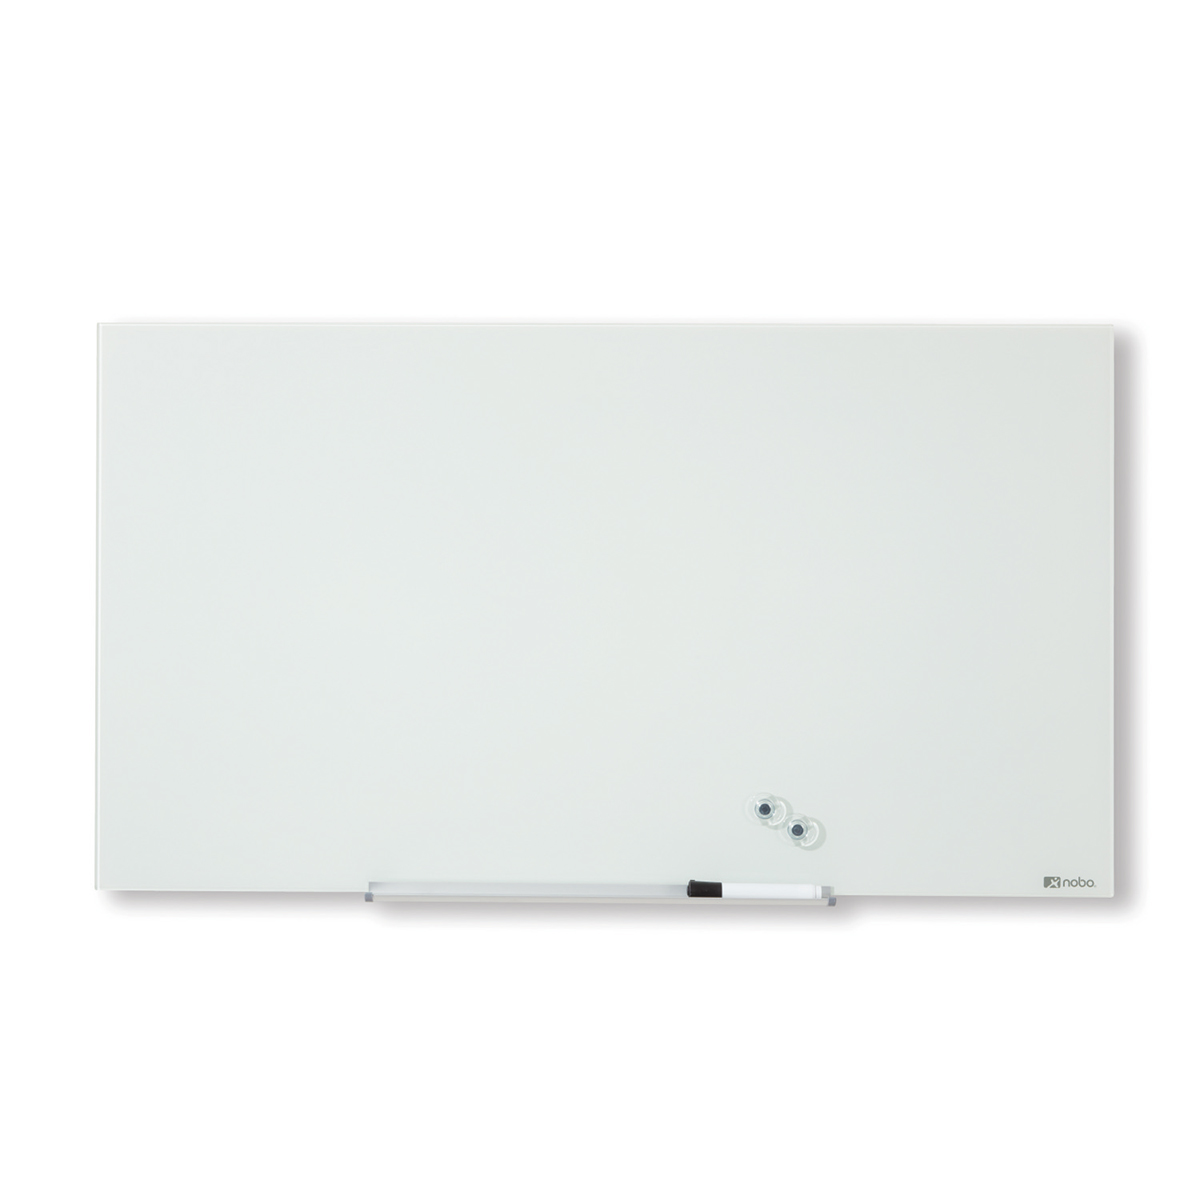 Nobo 1905176 Diamond Glass Whiteboard 993 x 559mm